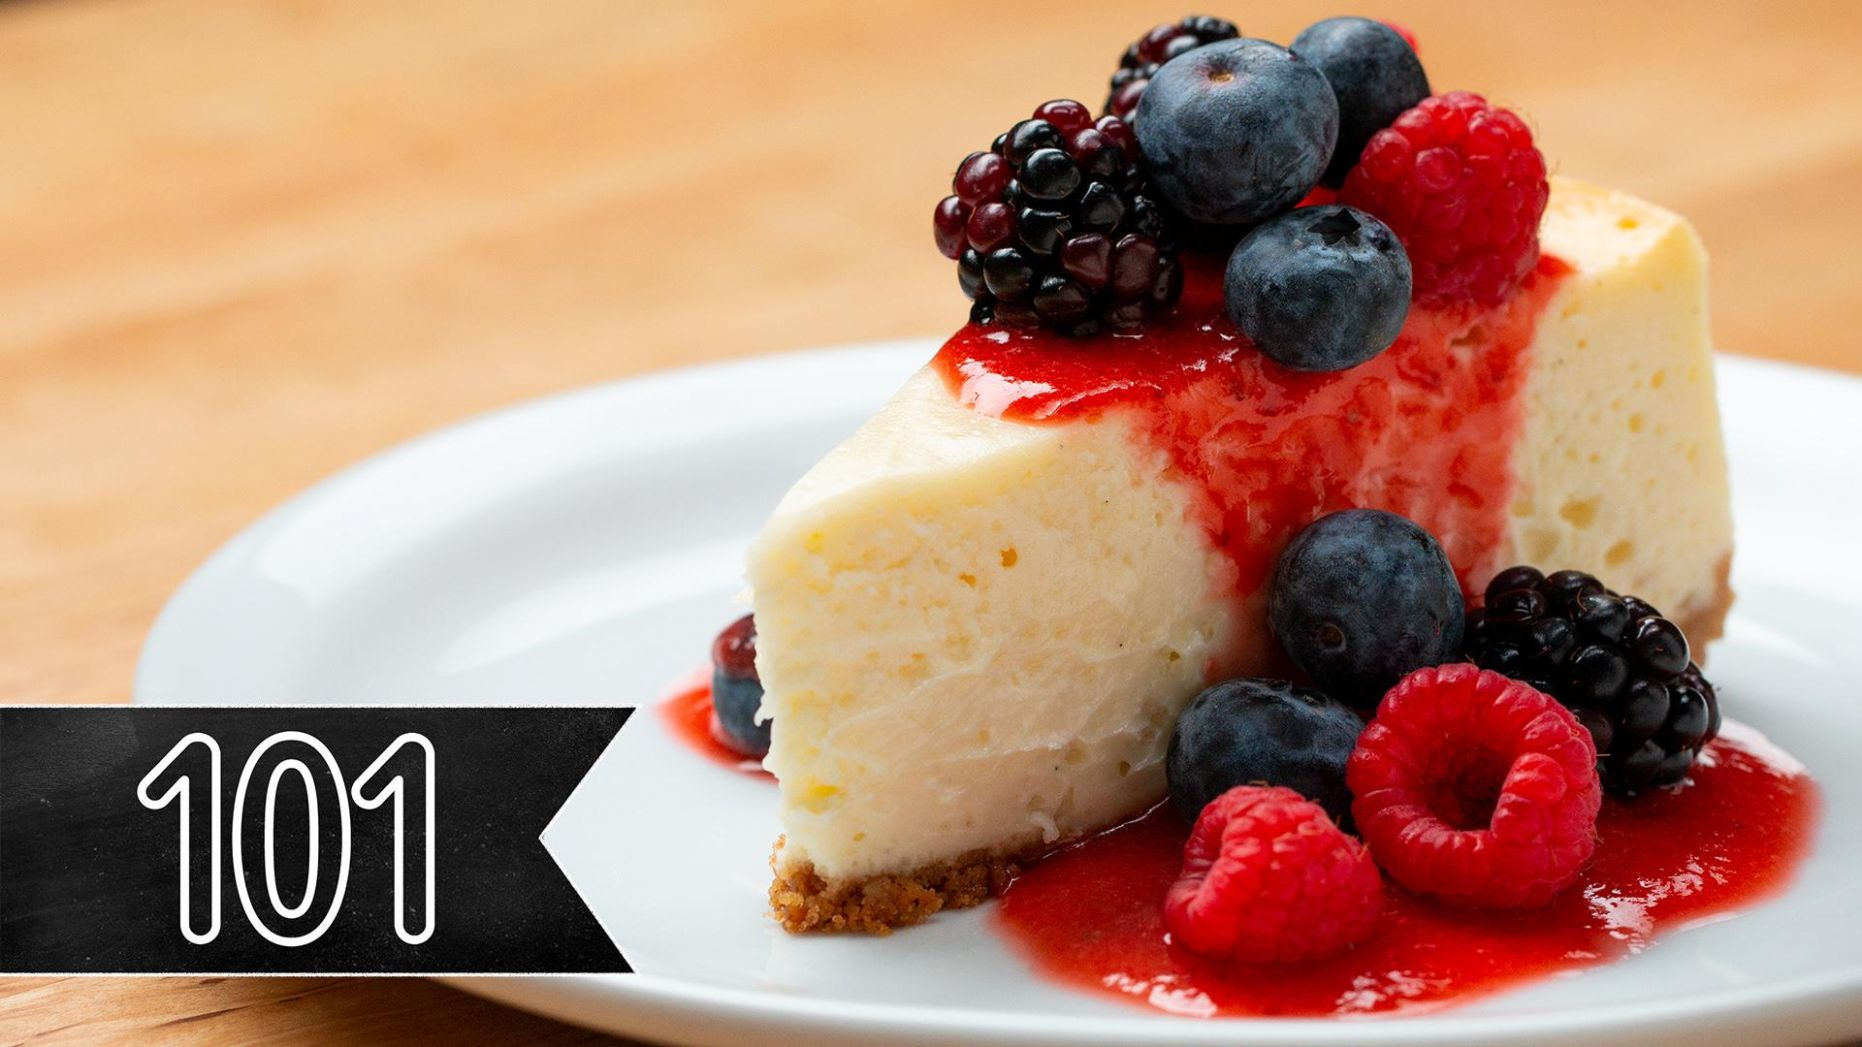 Classic Creamy Cheesecake Recipe by Tasty - Dessert Recipes Tasty